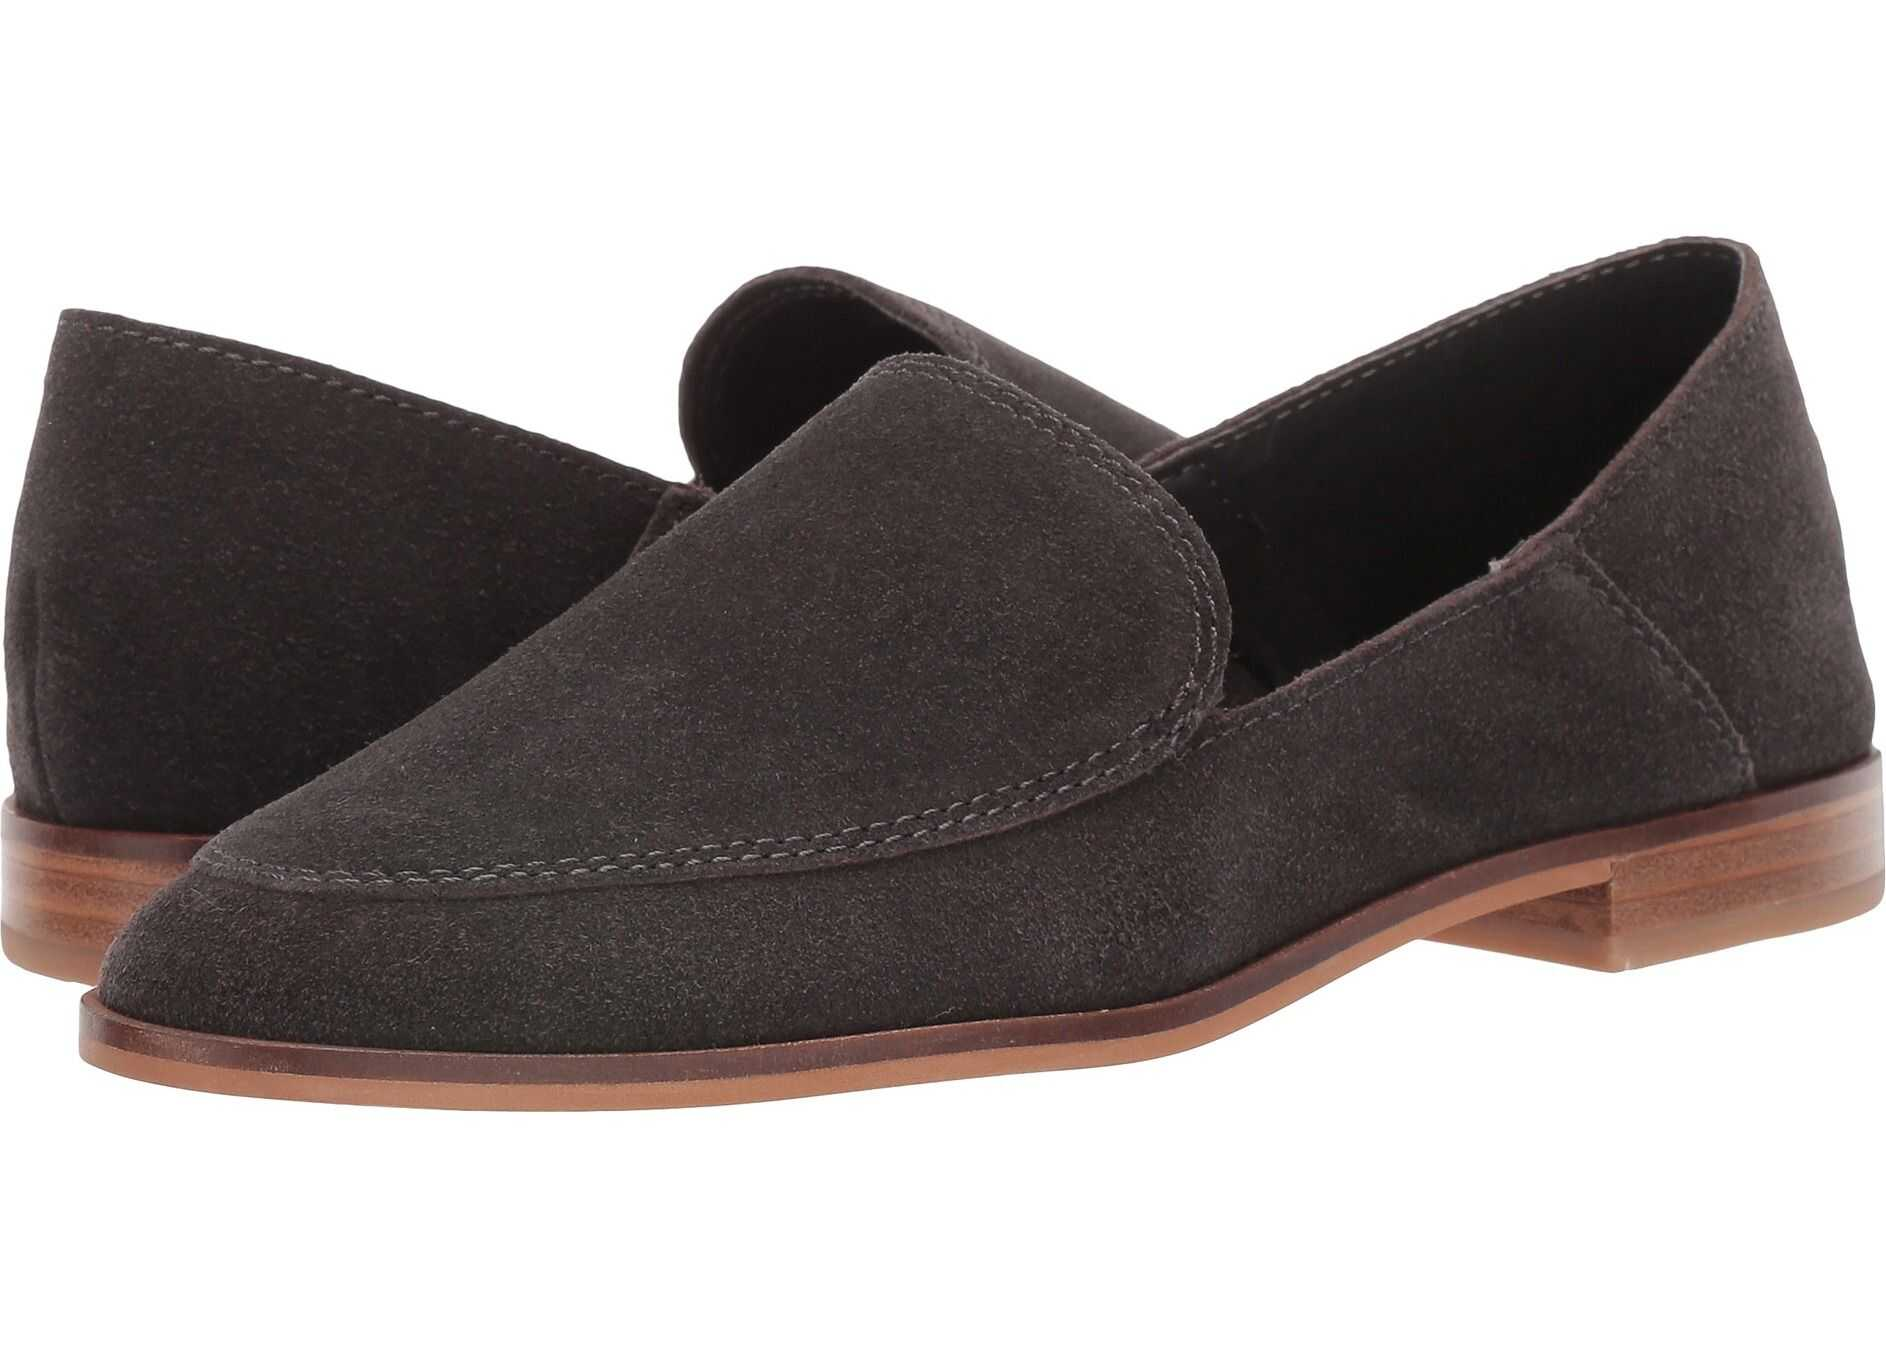 Dolce Vita Prity Anthracite Suede